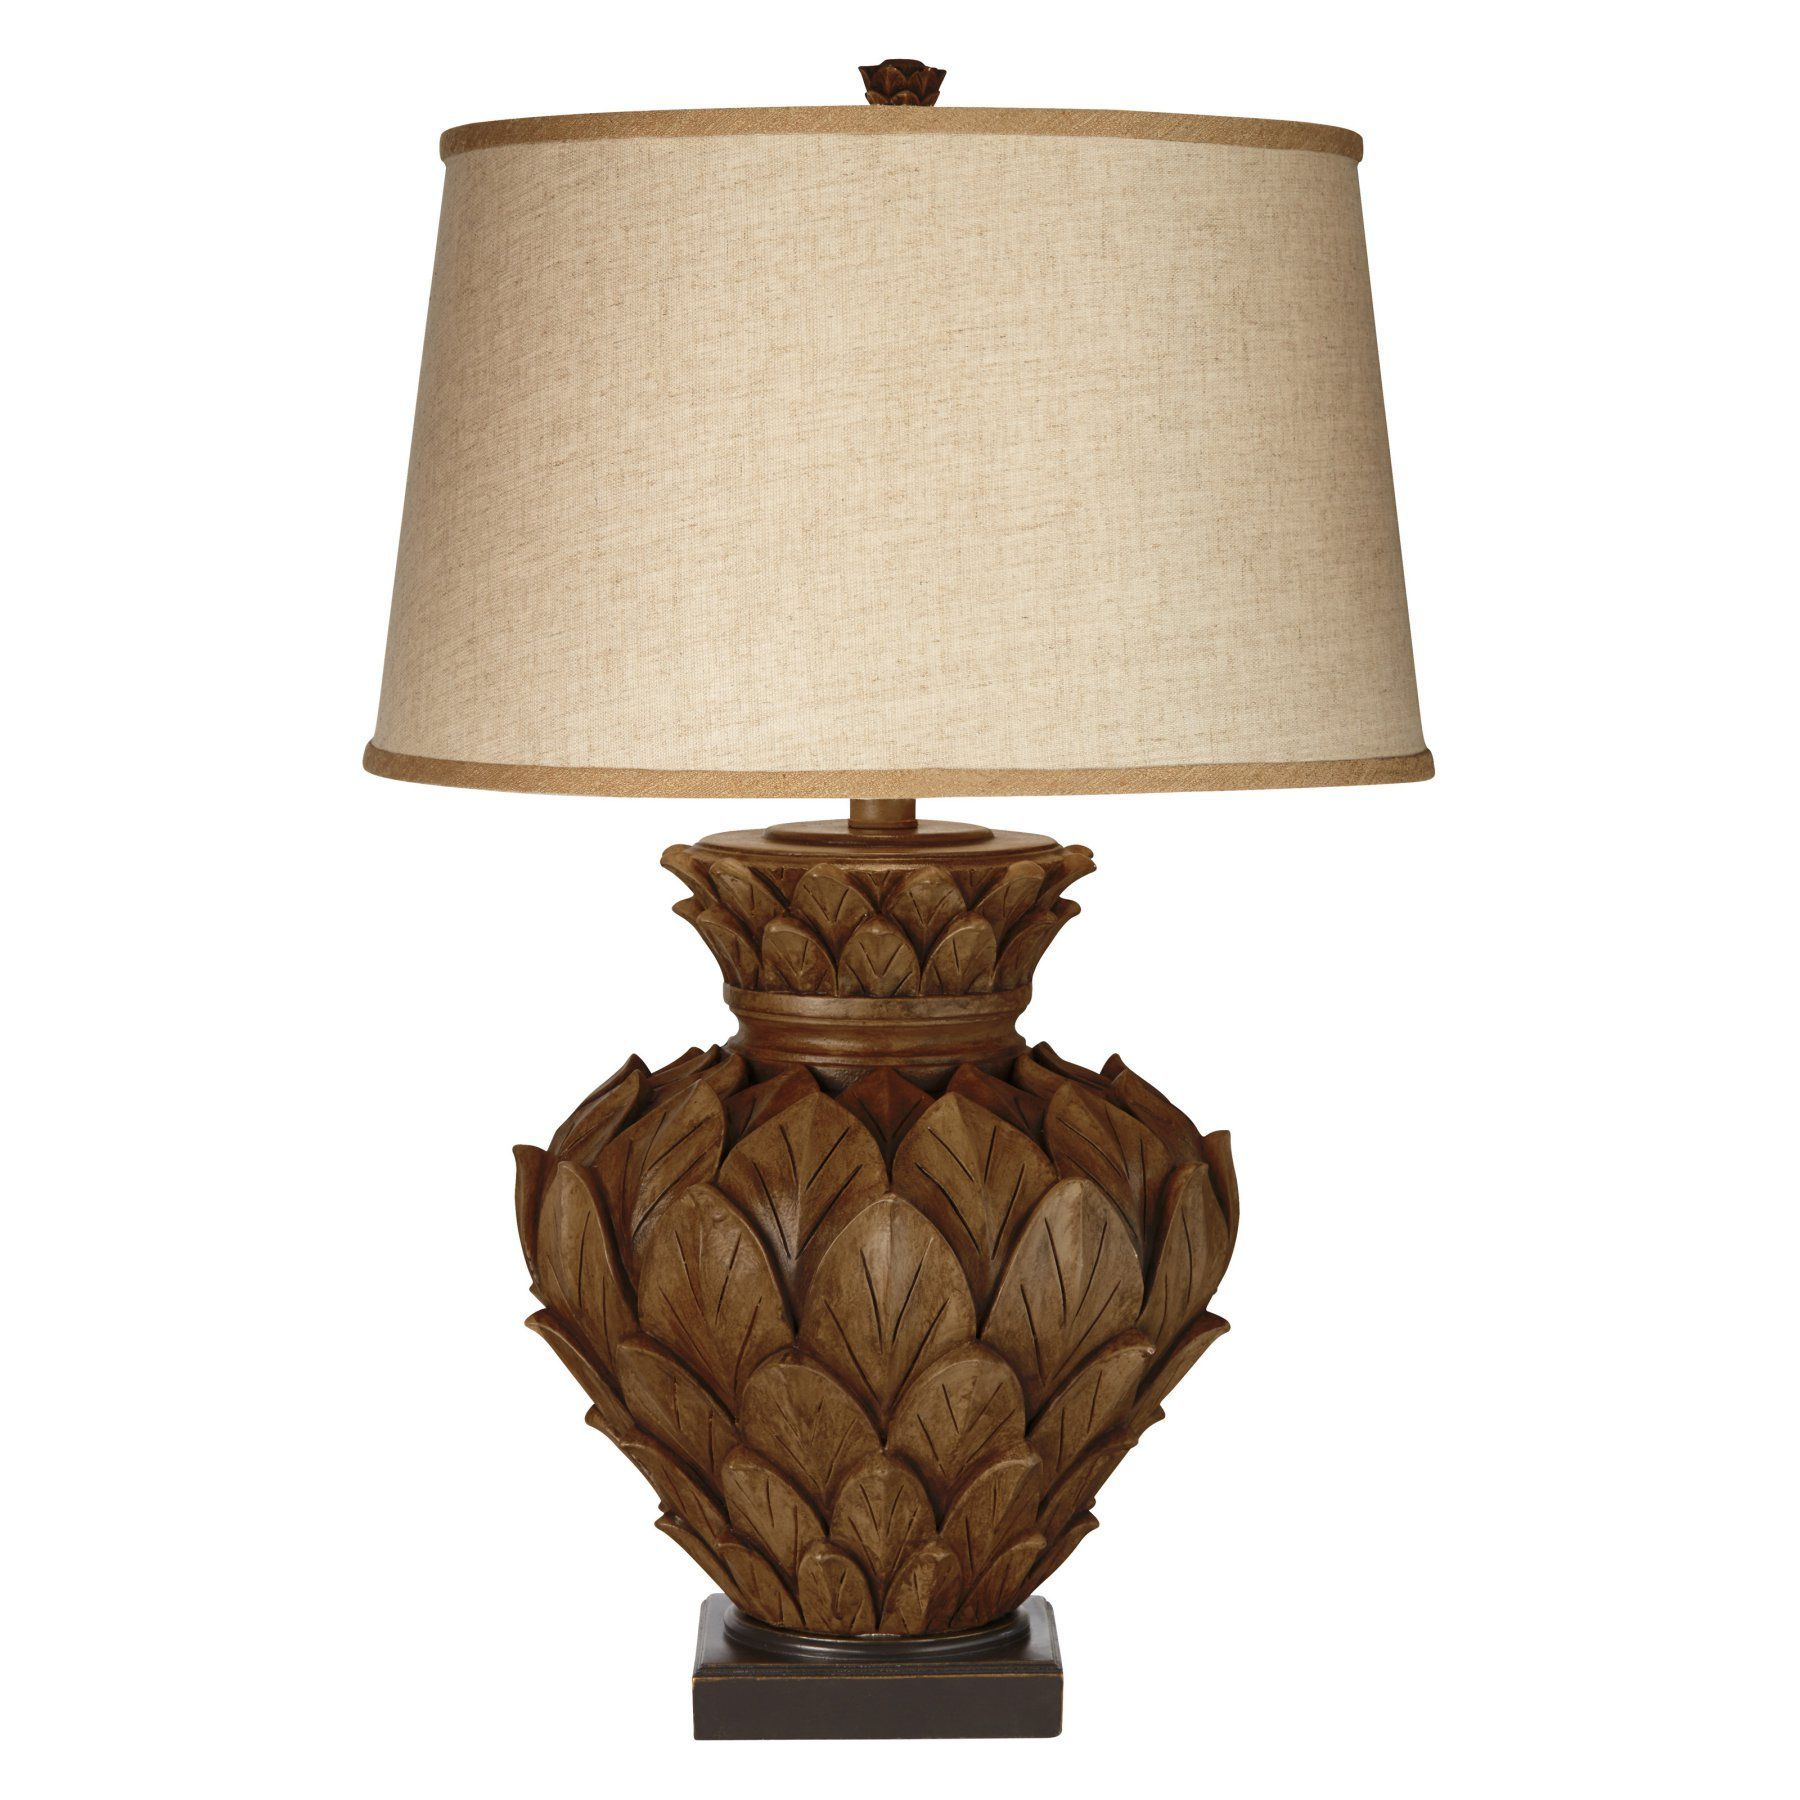 glow width lamp lamps trim lampsolive threshold item pacific light coast grand table lighting products olive height